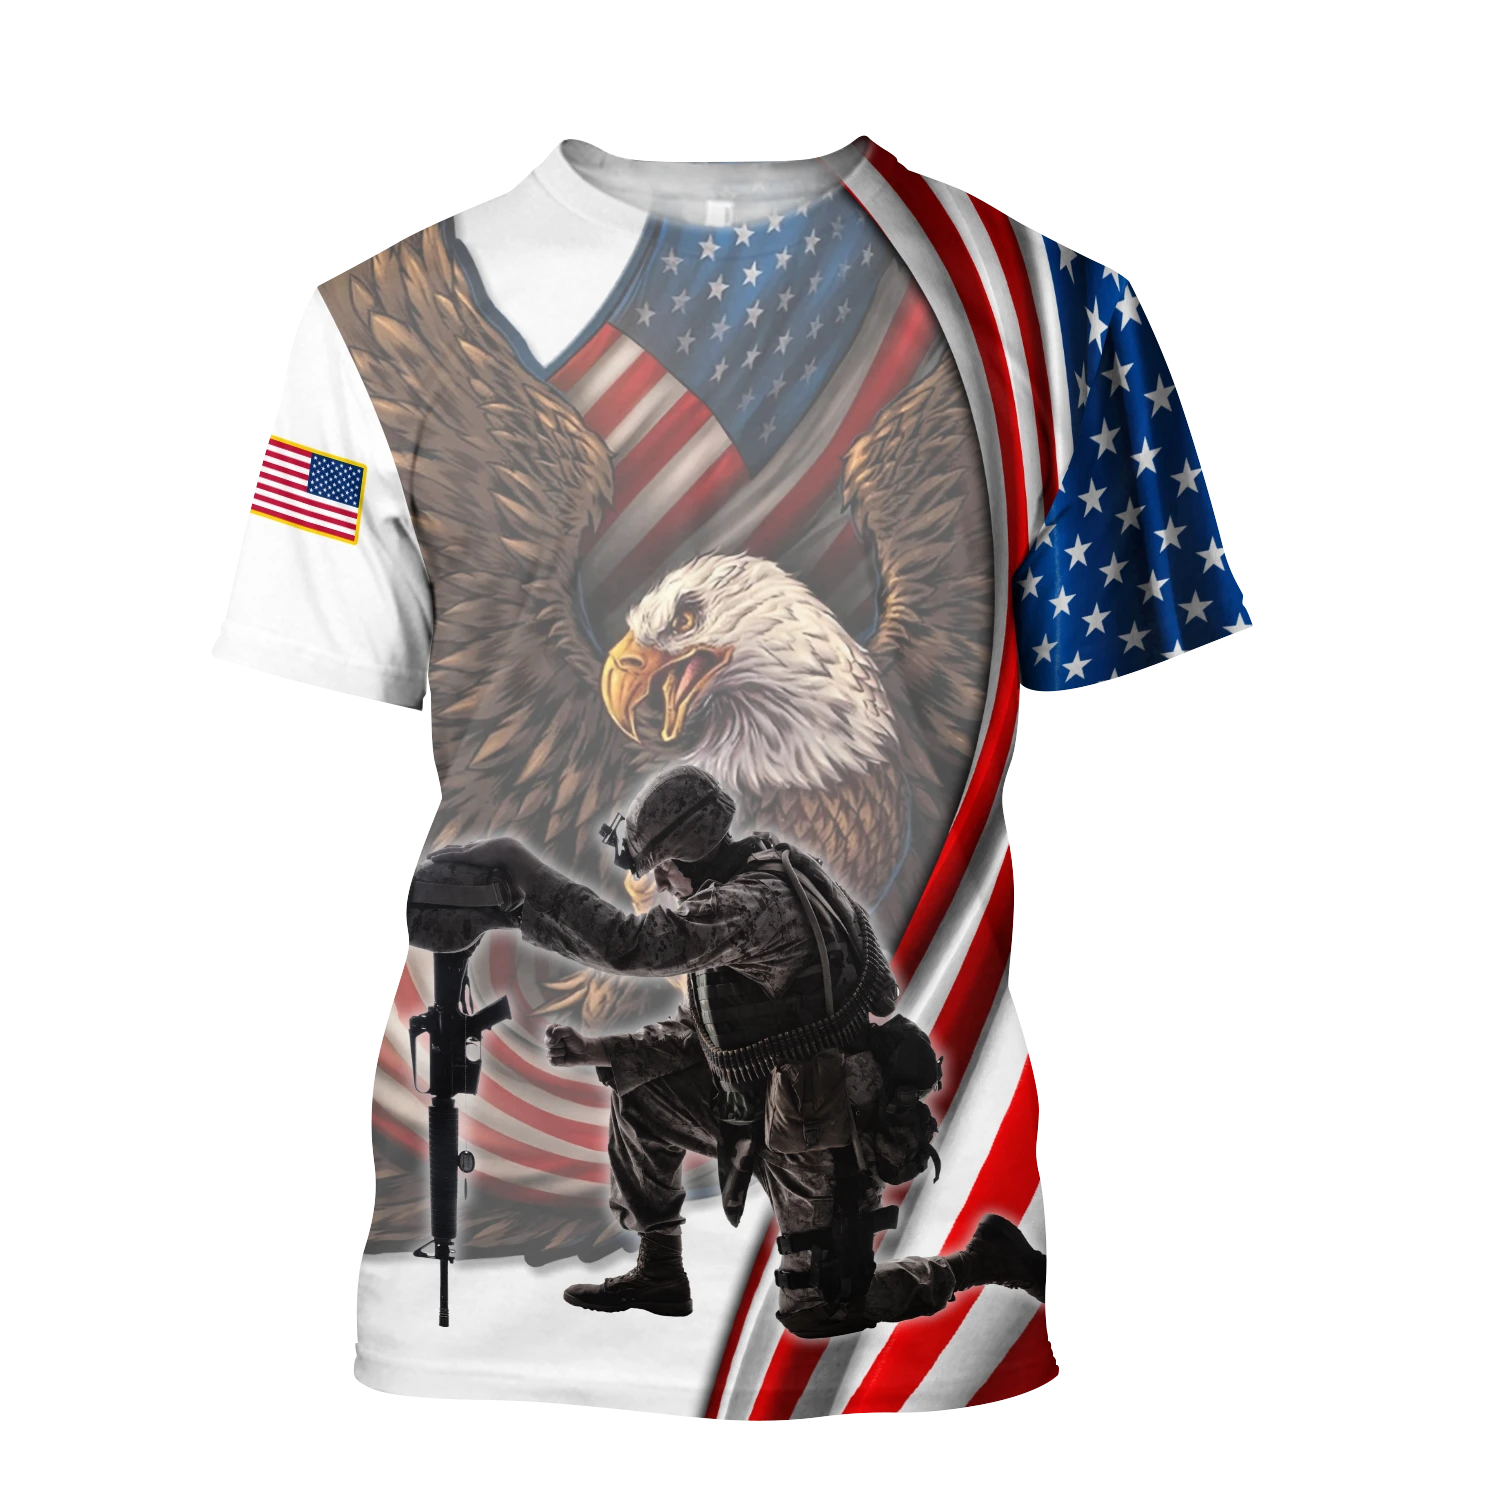 Top Selling If You Haven't Risked Coming Home Under A Flag Don't you dare disrespect it US Veteran 3D All Over Printed Hoodie